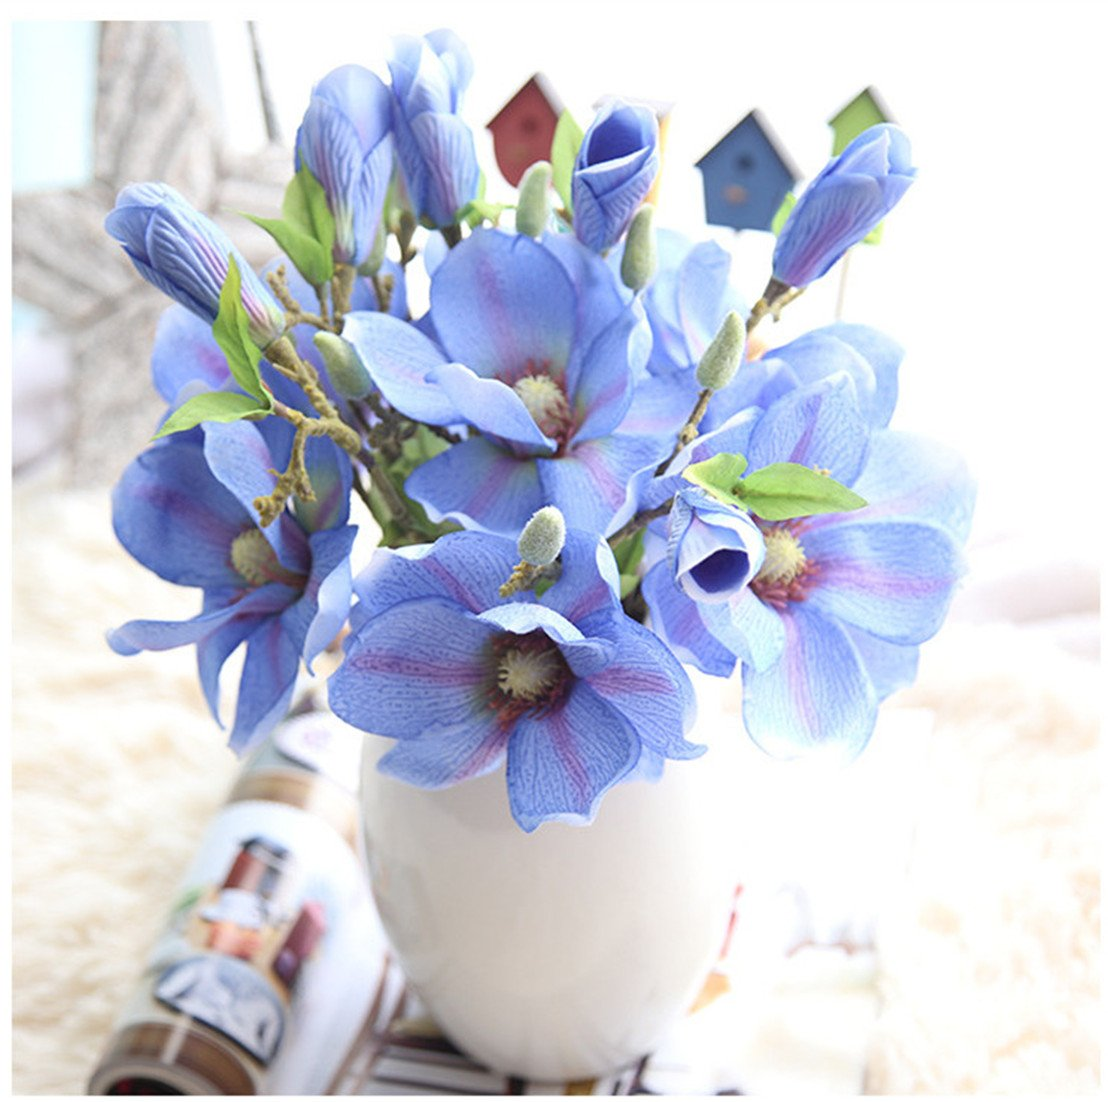 Mynse 5 Pieces Fake Flowers Magnolia Denudata For Home Birthday